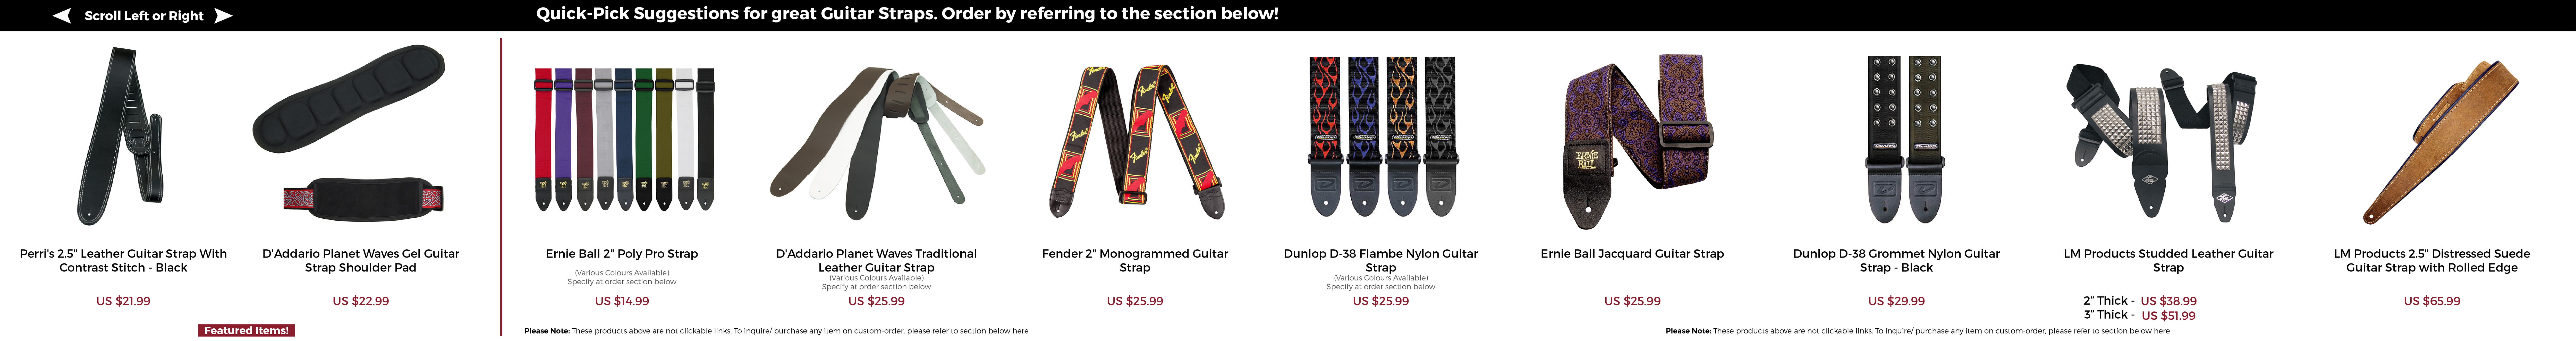 LW-Guitar-Straps-Options.png